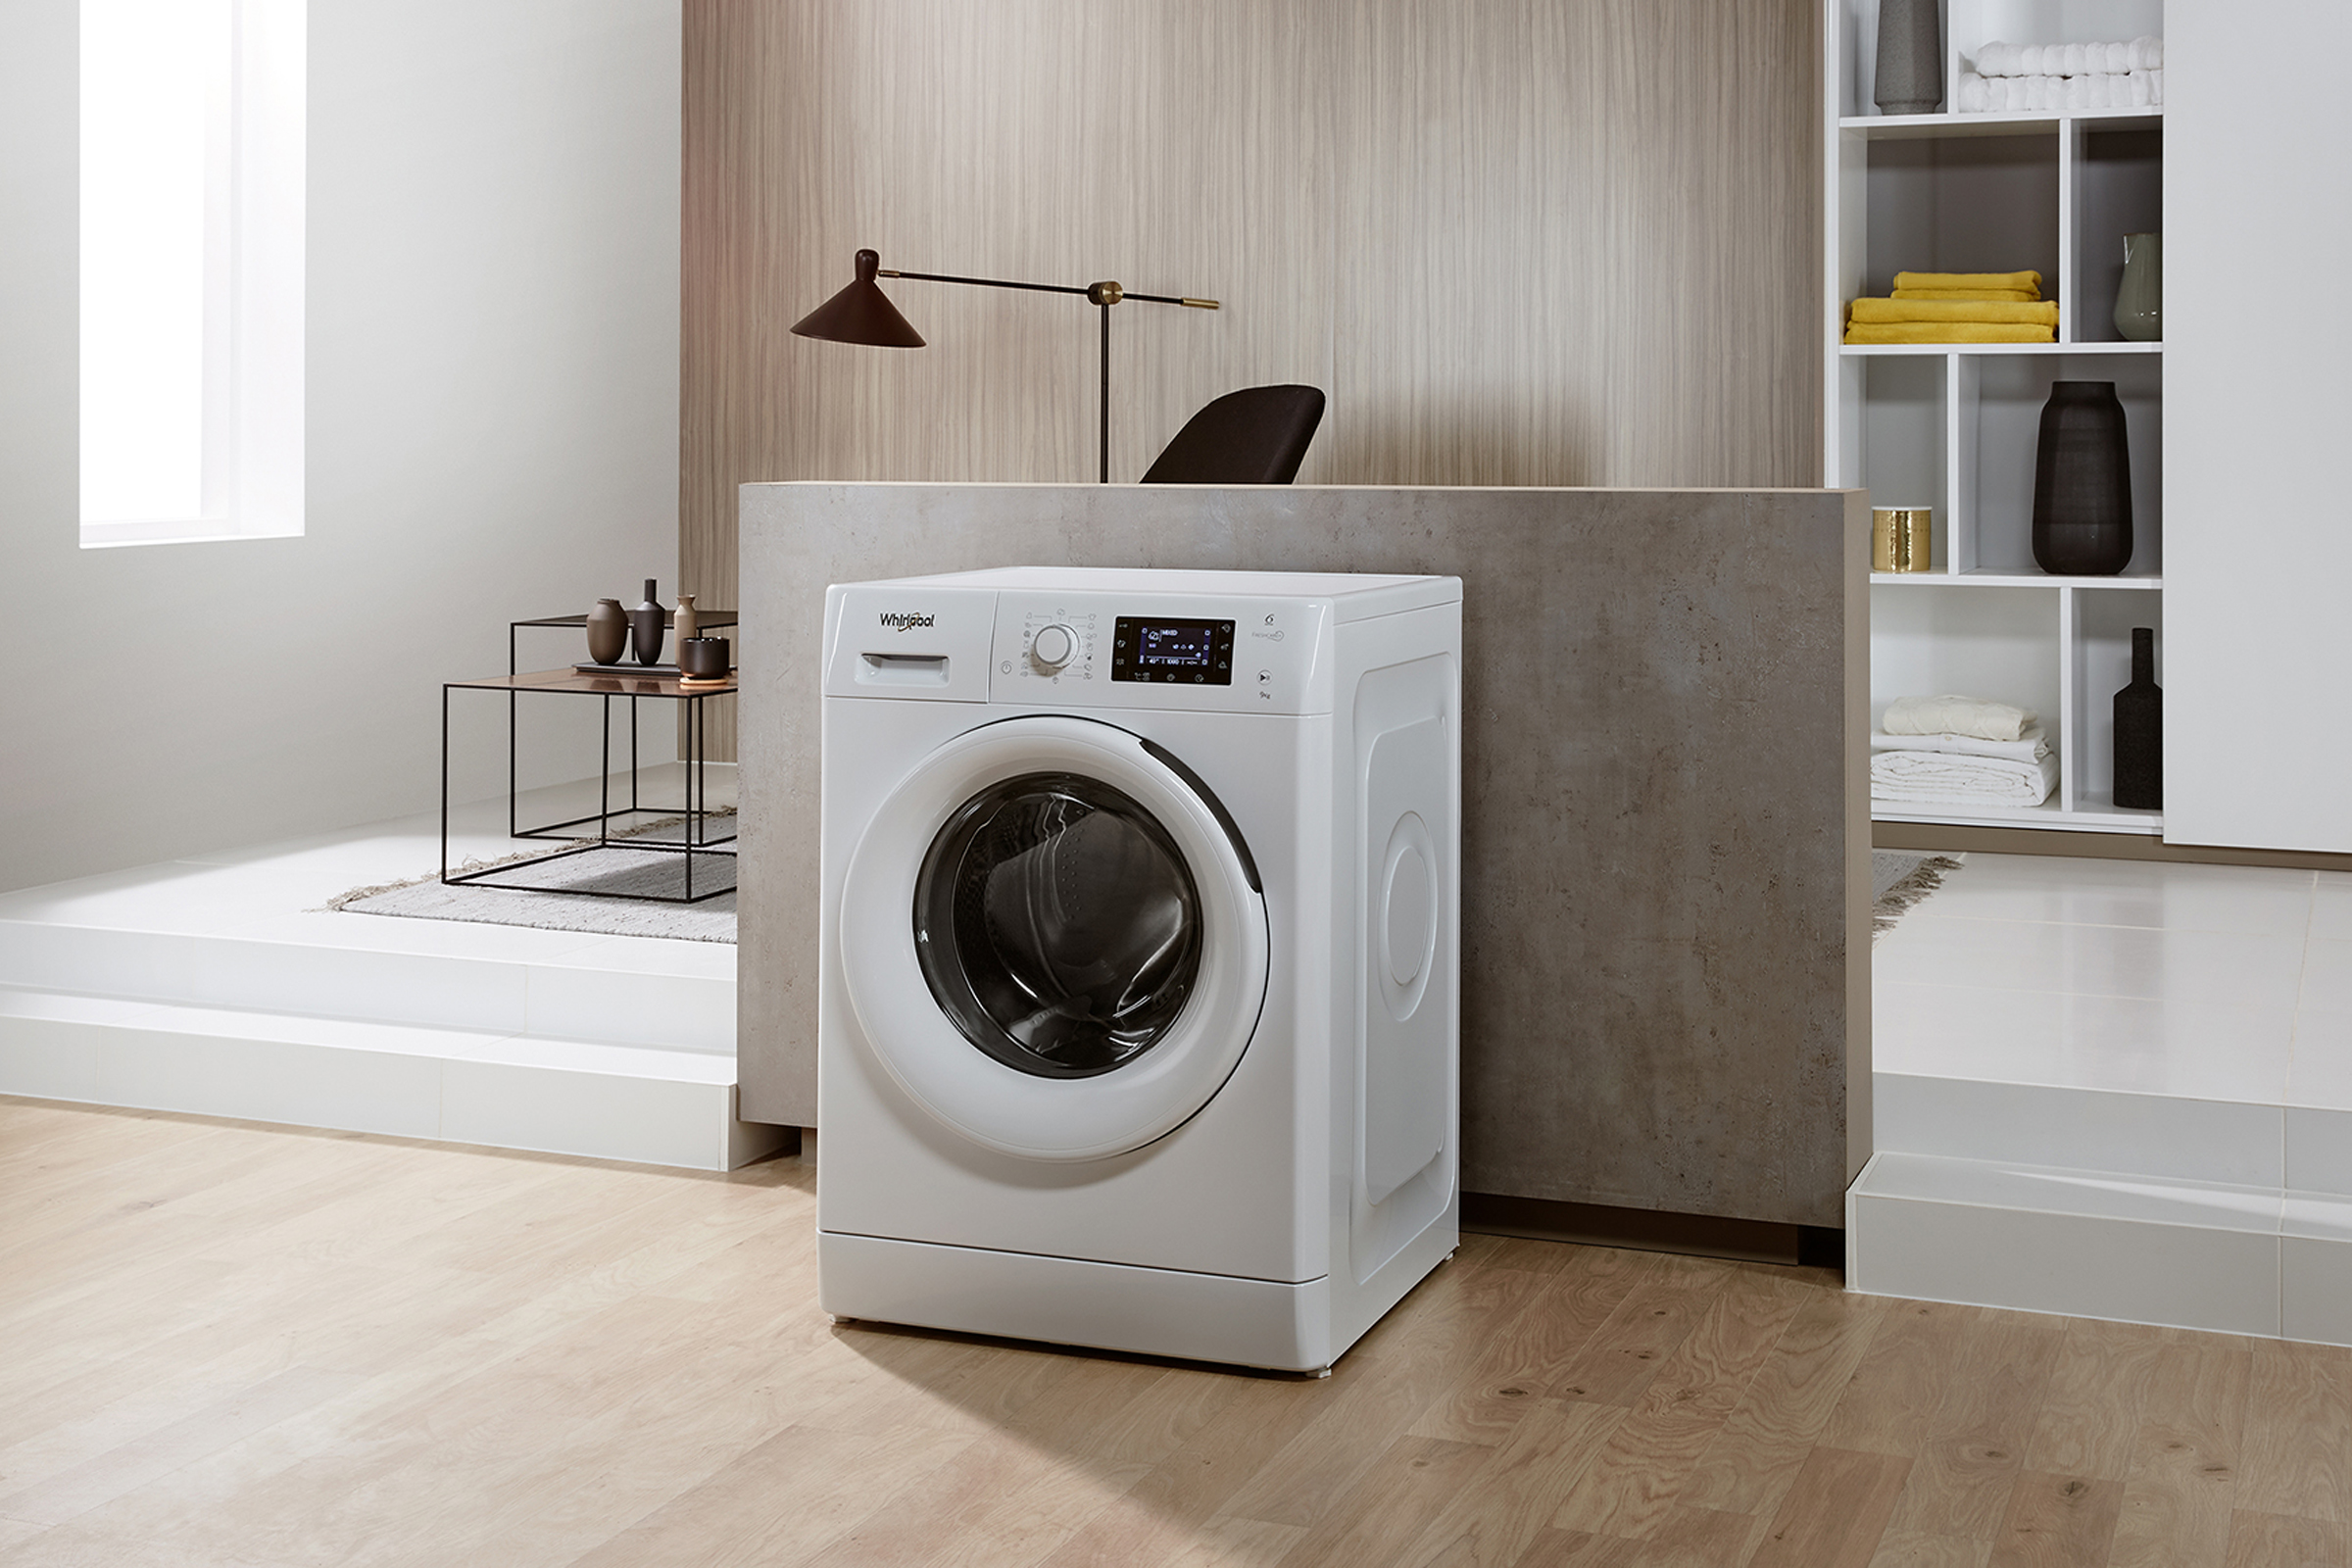 Buy Cheap Washing Machines in the Netherlands – Family ...